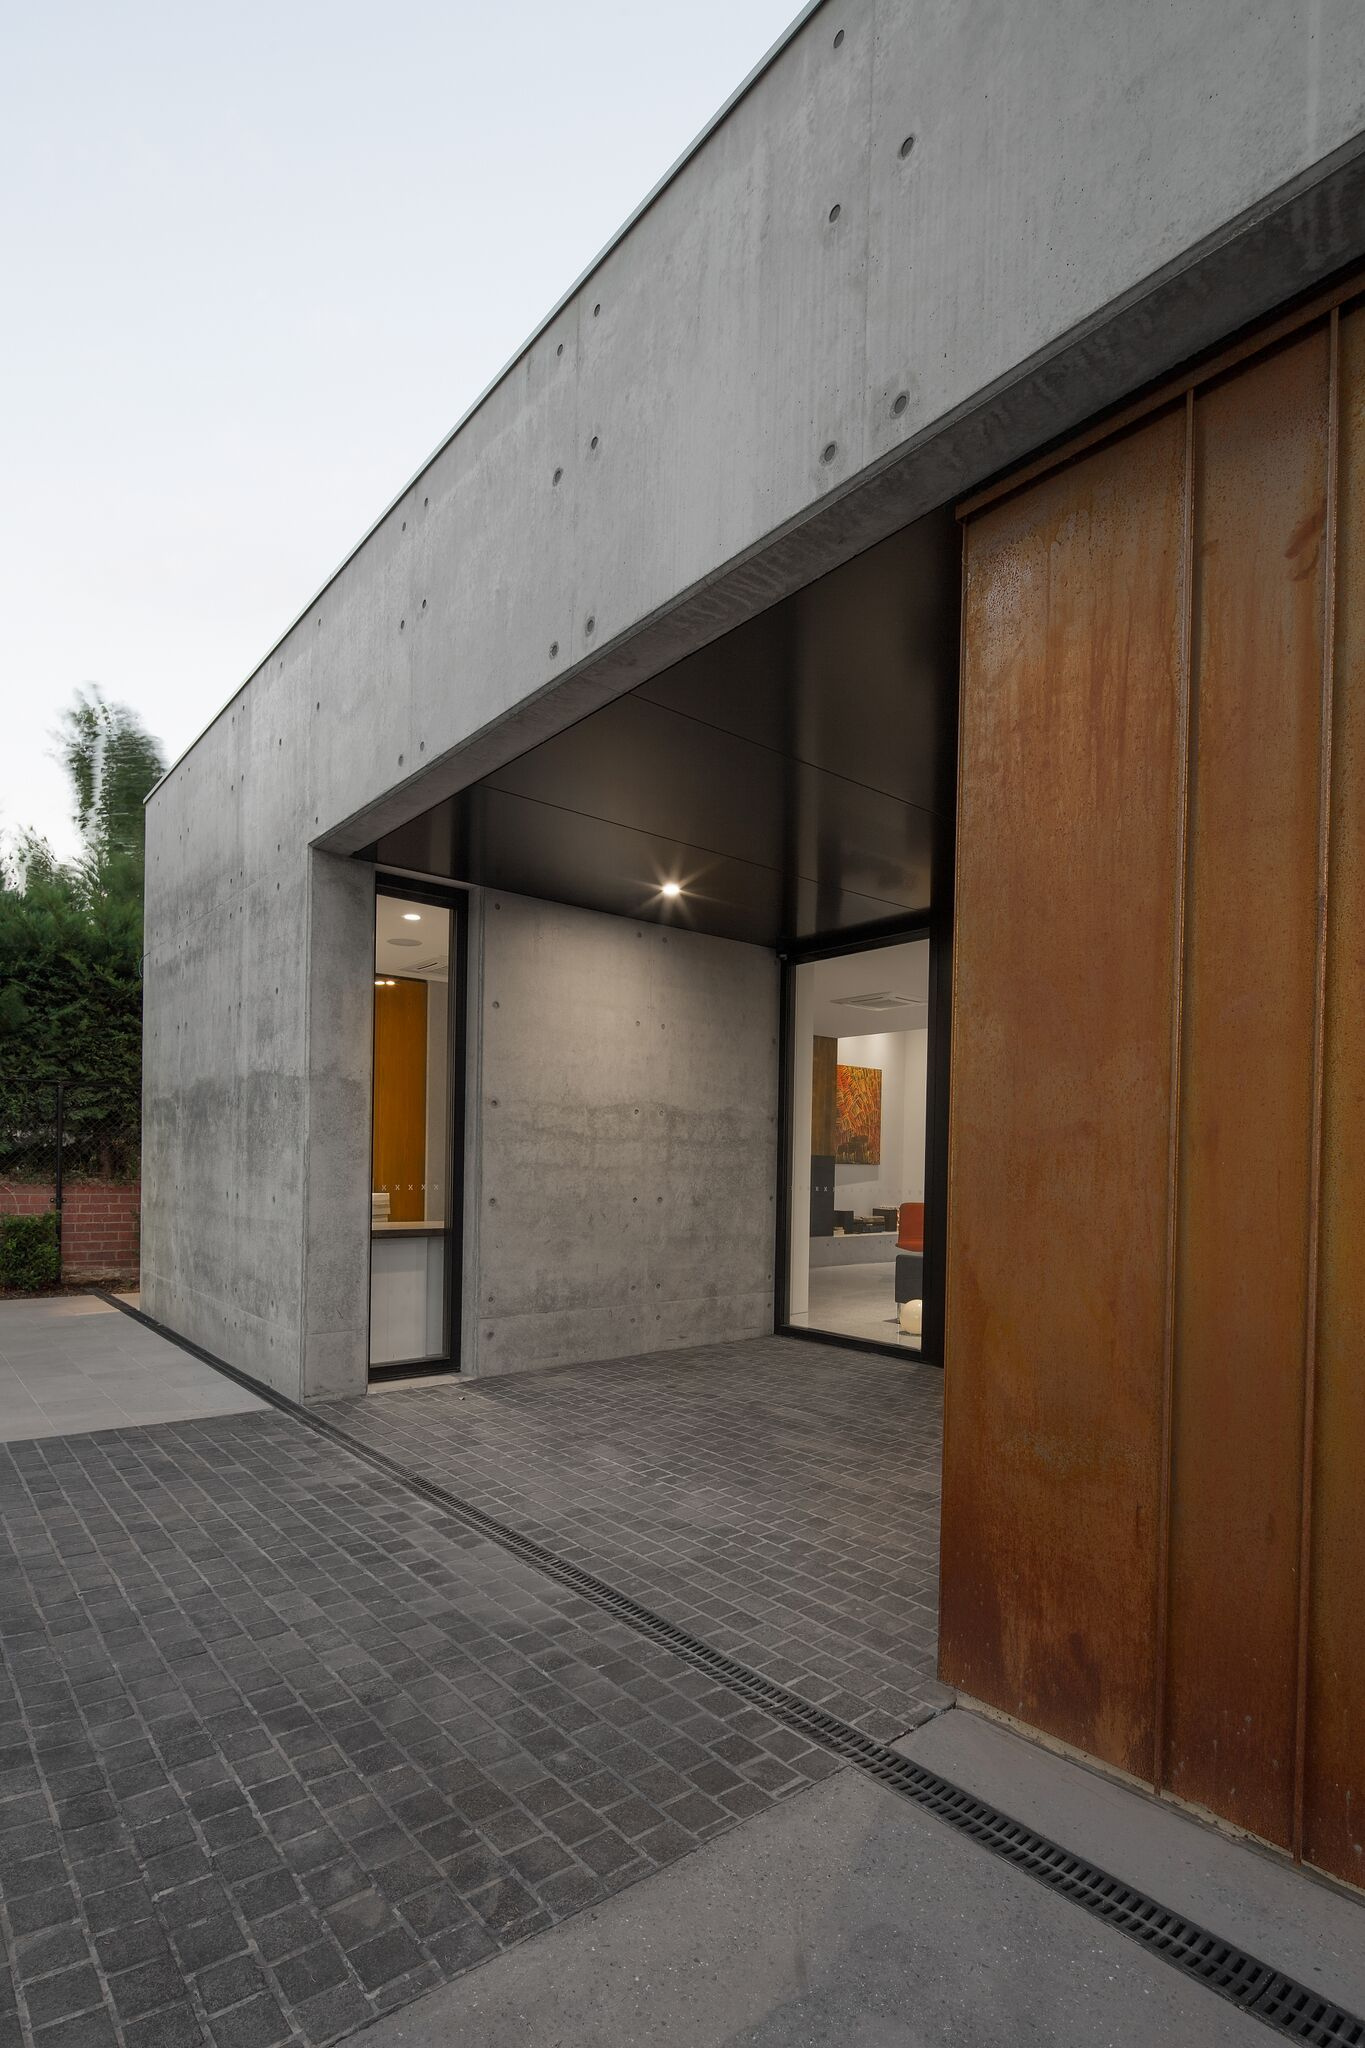 Concrete And Nail Polish Layering With Zoya Belinda Maisie: Entry -,corten, Concrete And Stone Paving. Builder Ross